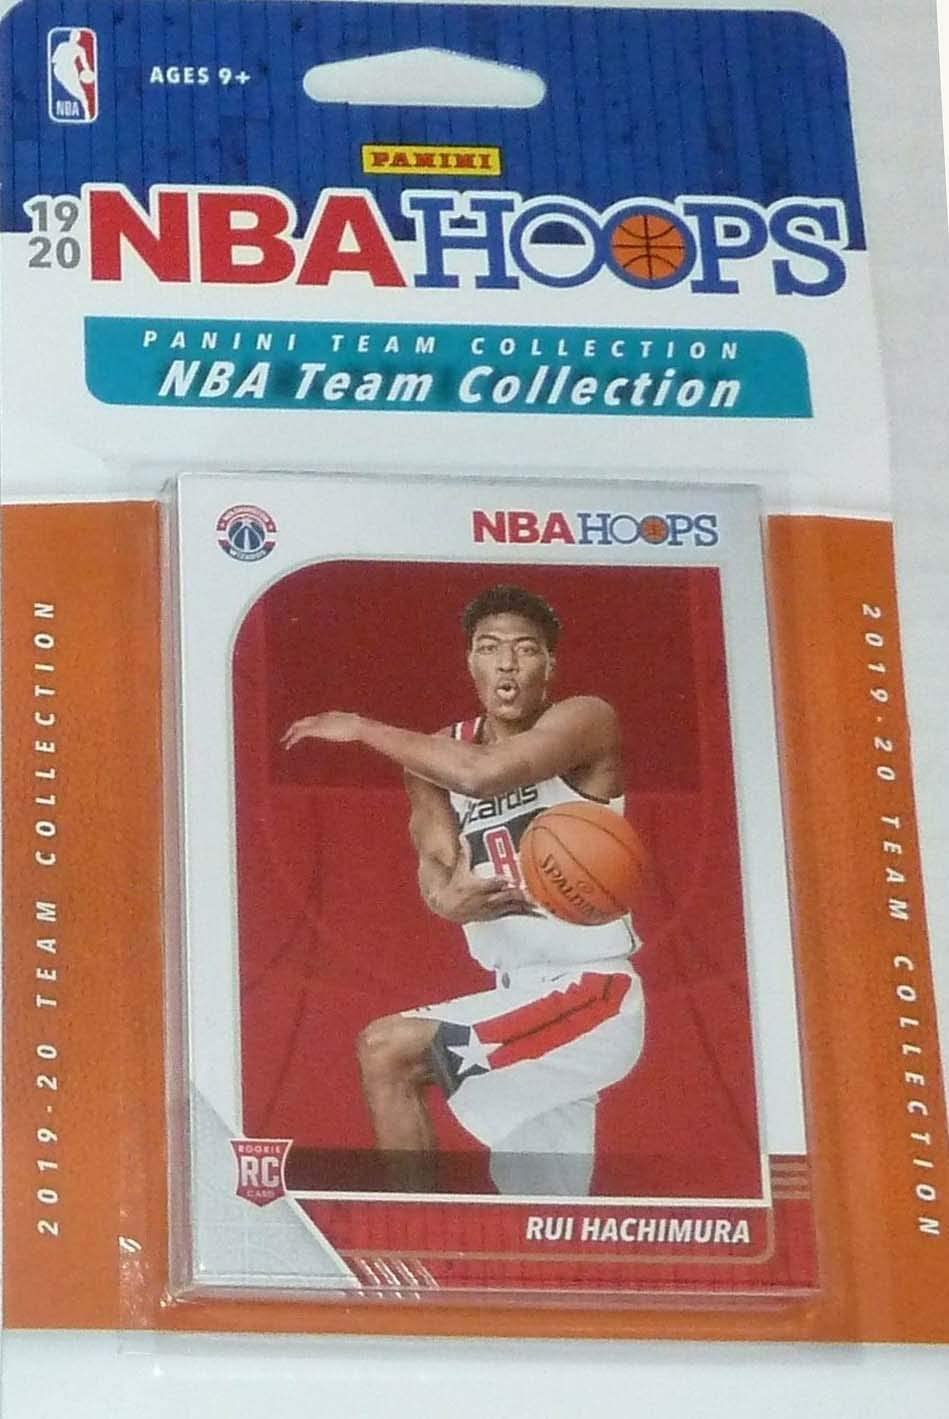 Washington Wizards 2019 2020 Hoops Basketball Factory Sealed 8 Card Team Set with Bradley Beal, John Wall and a Rui Hachimura Rookie Card Plus